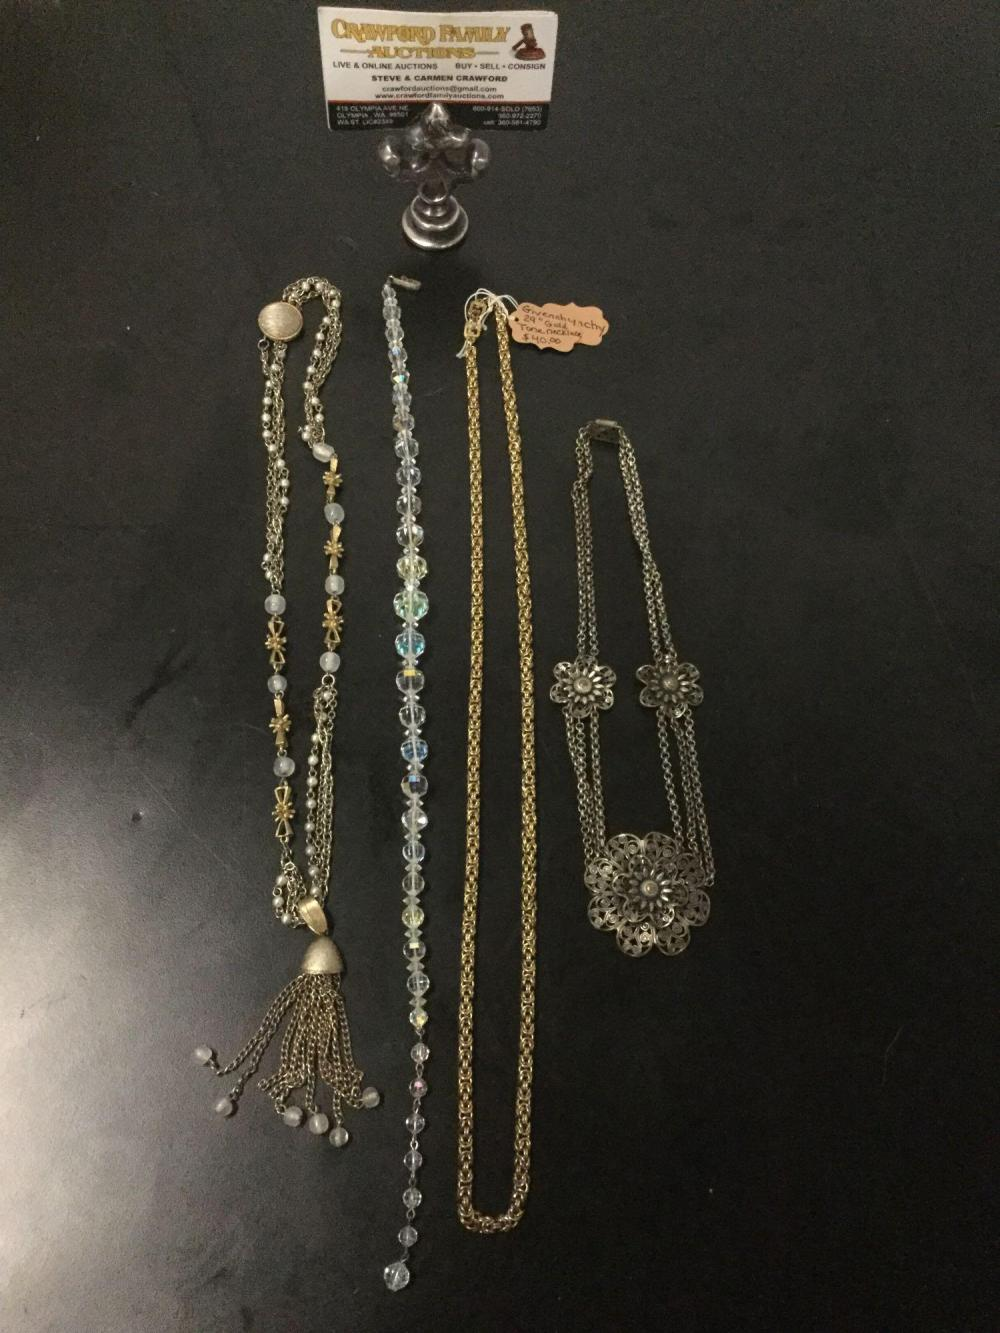 4 vintage estate jewelry necklaces incl. Mexican filigree necklace, Laguna crystal choker, etc